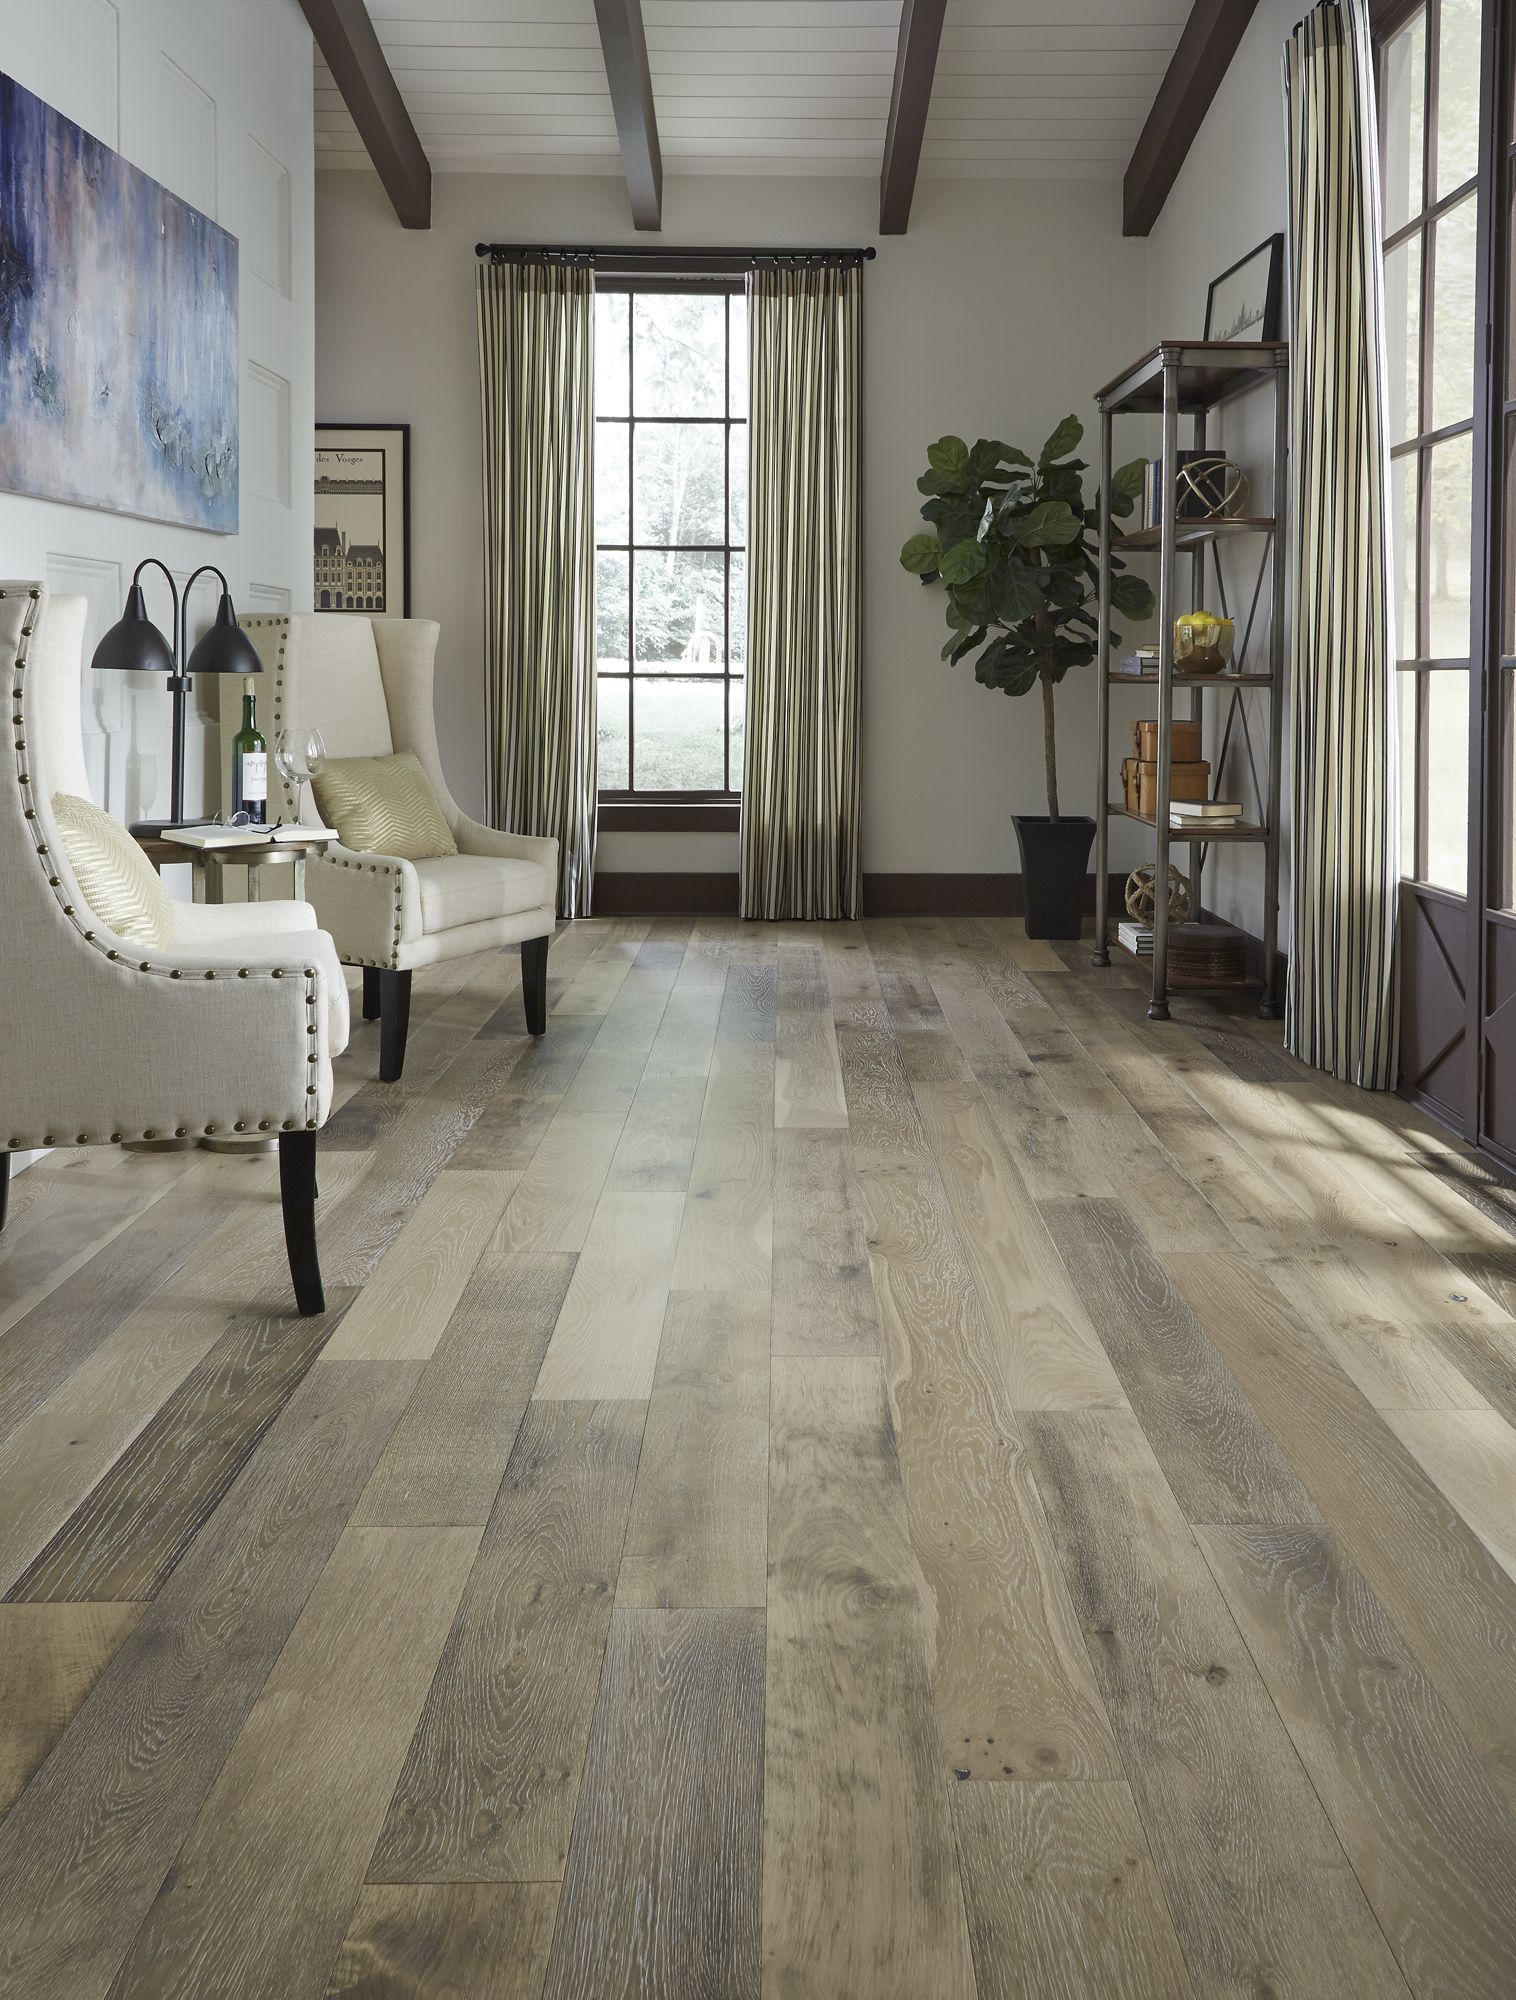 Freshen up your home with the latest flooring styles, like Vintage